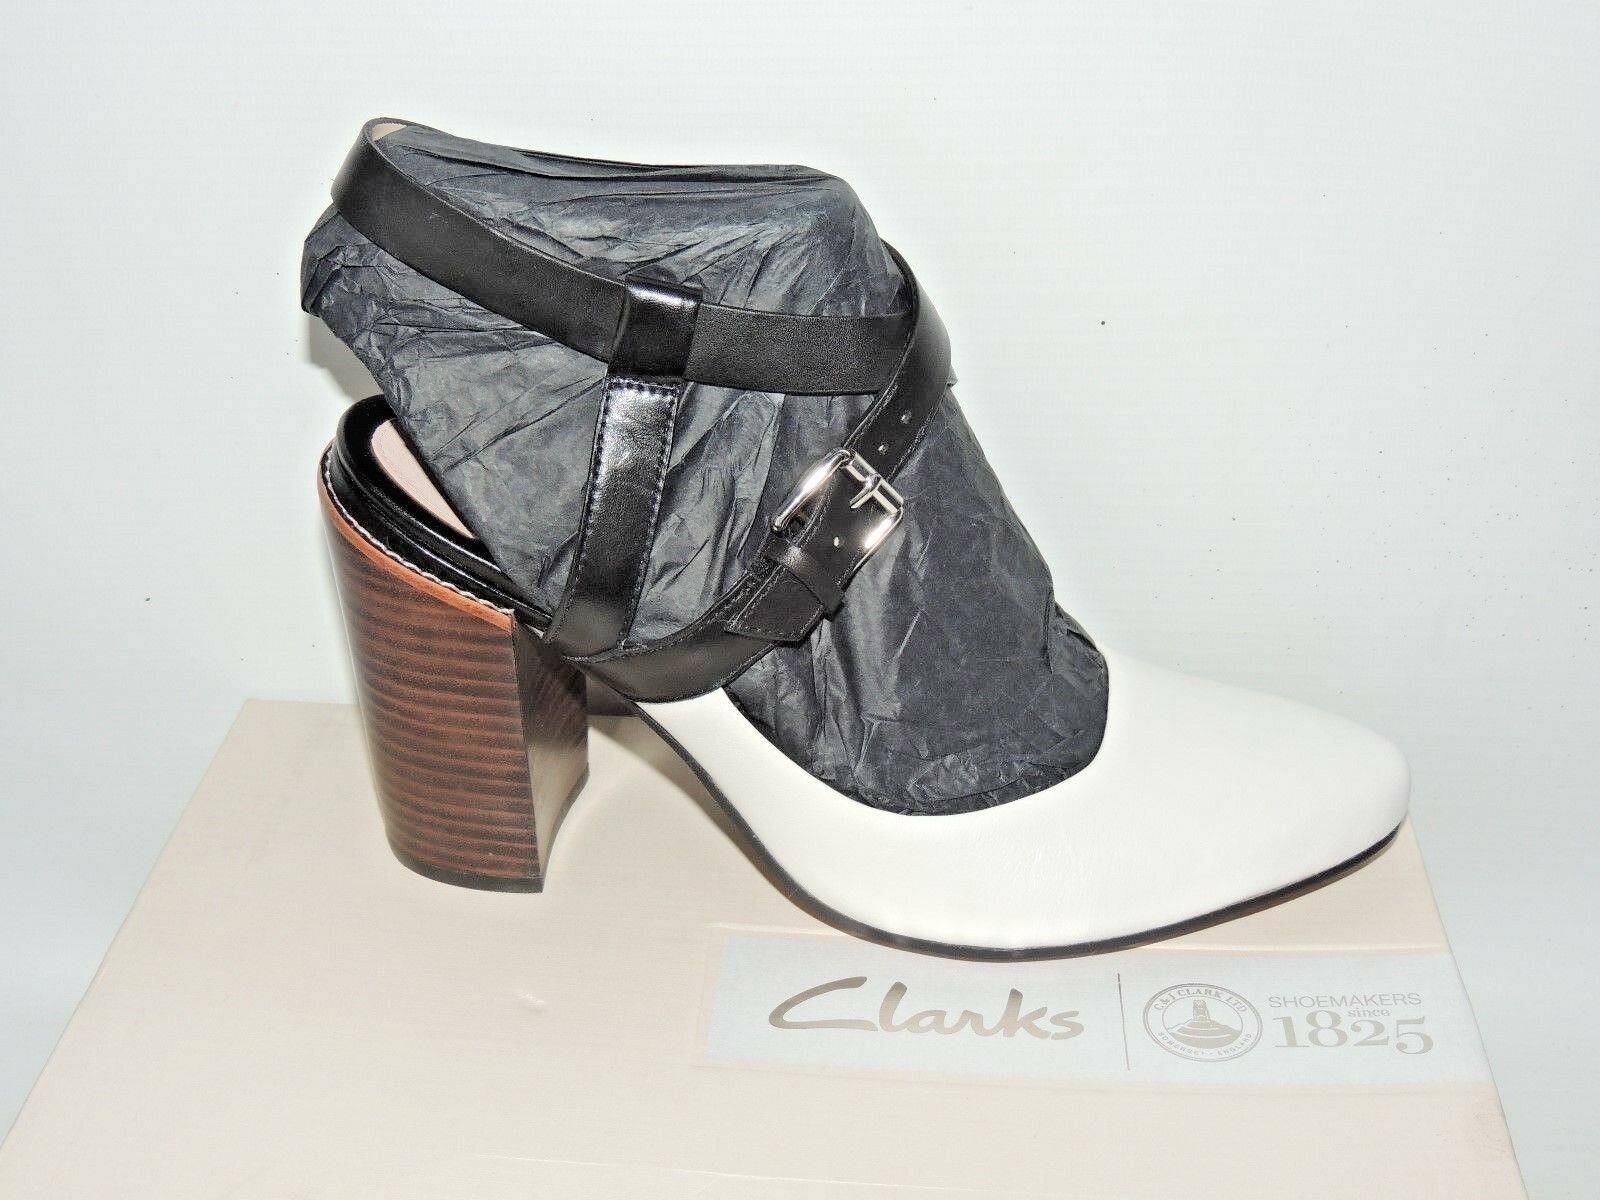 CLARKS CRUMBLE SPICE BLACK AND WHITE LEATHER SHOES. D FITTING. BNIB